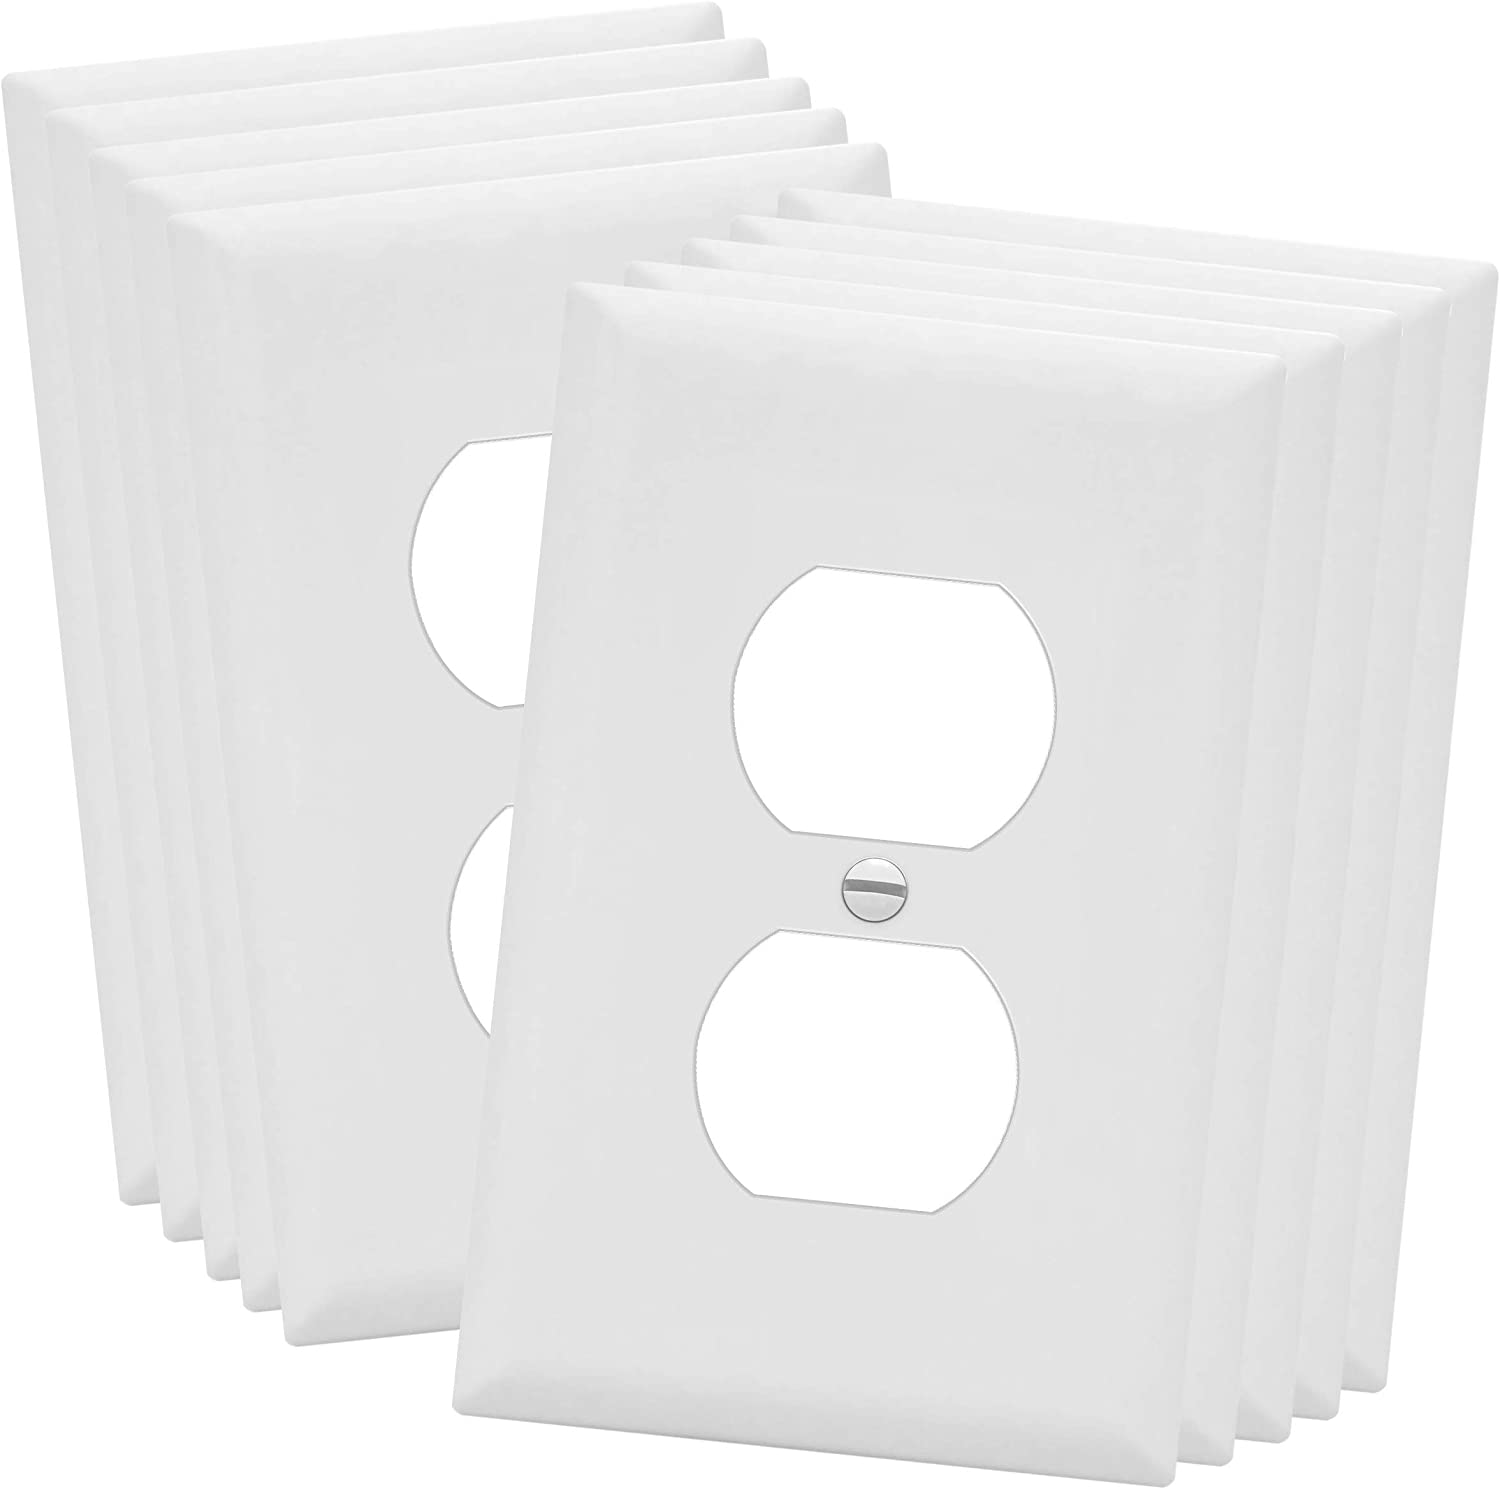 """ENERLITES Duplex Receptacle Outlet Wall Plate, Electrical Outlet Cover, Midway Size 1-Gang 4.88"""" x 3.11"""", Unbreakable Polycarbonate Thermoplastic, UL Listed, 8821M-W-10PCS, White (10 Pack)"""